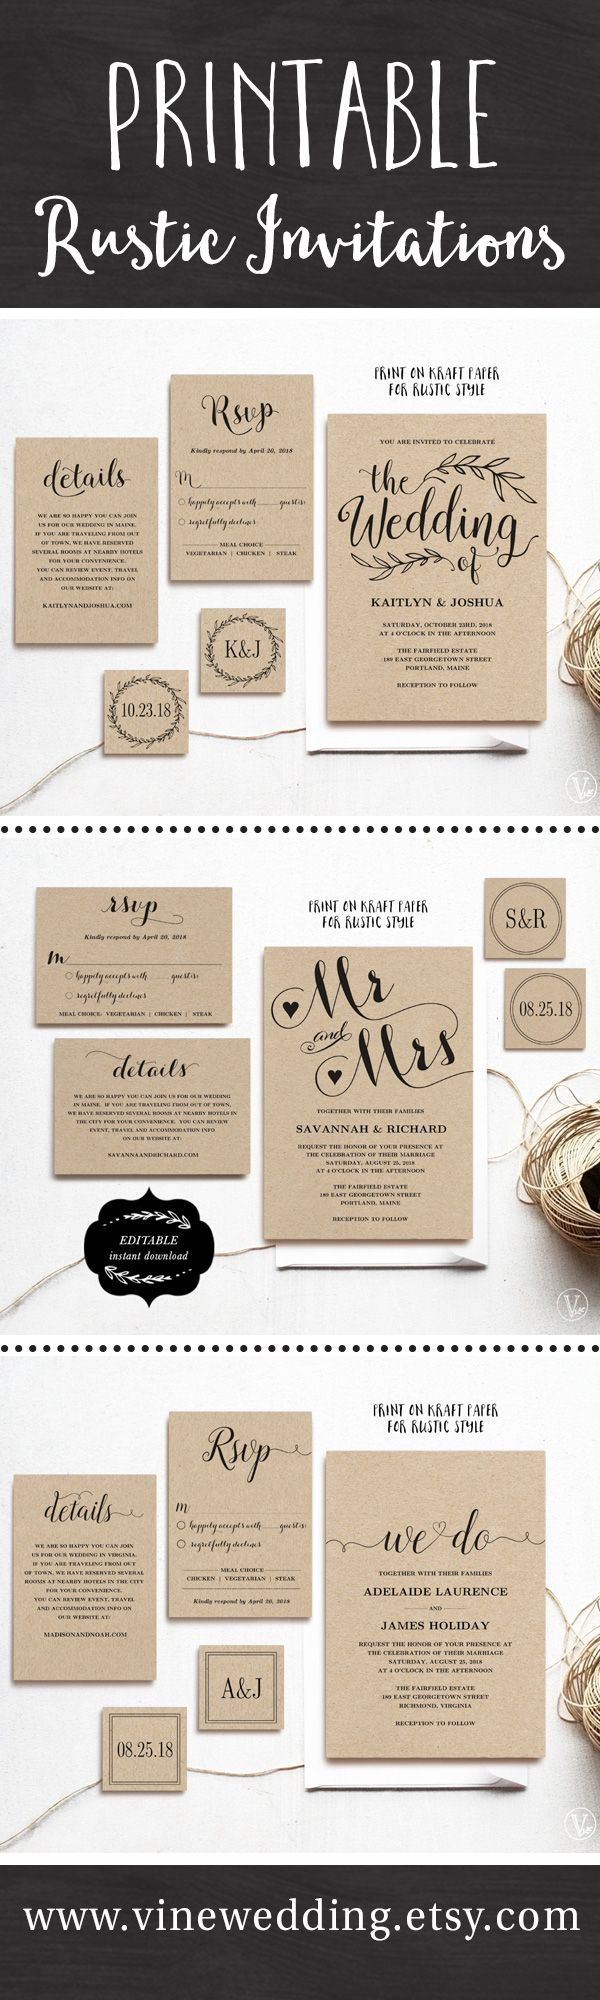 Beautiful rustic wedding invitations. Editable instant download templates you can print as many as you need. #wedding #invitations #vinewedding